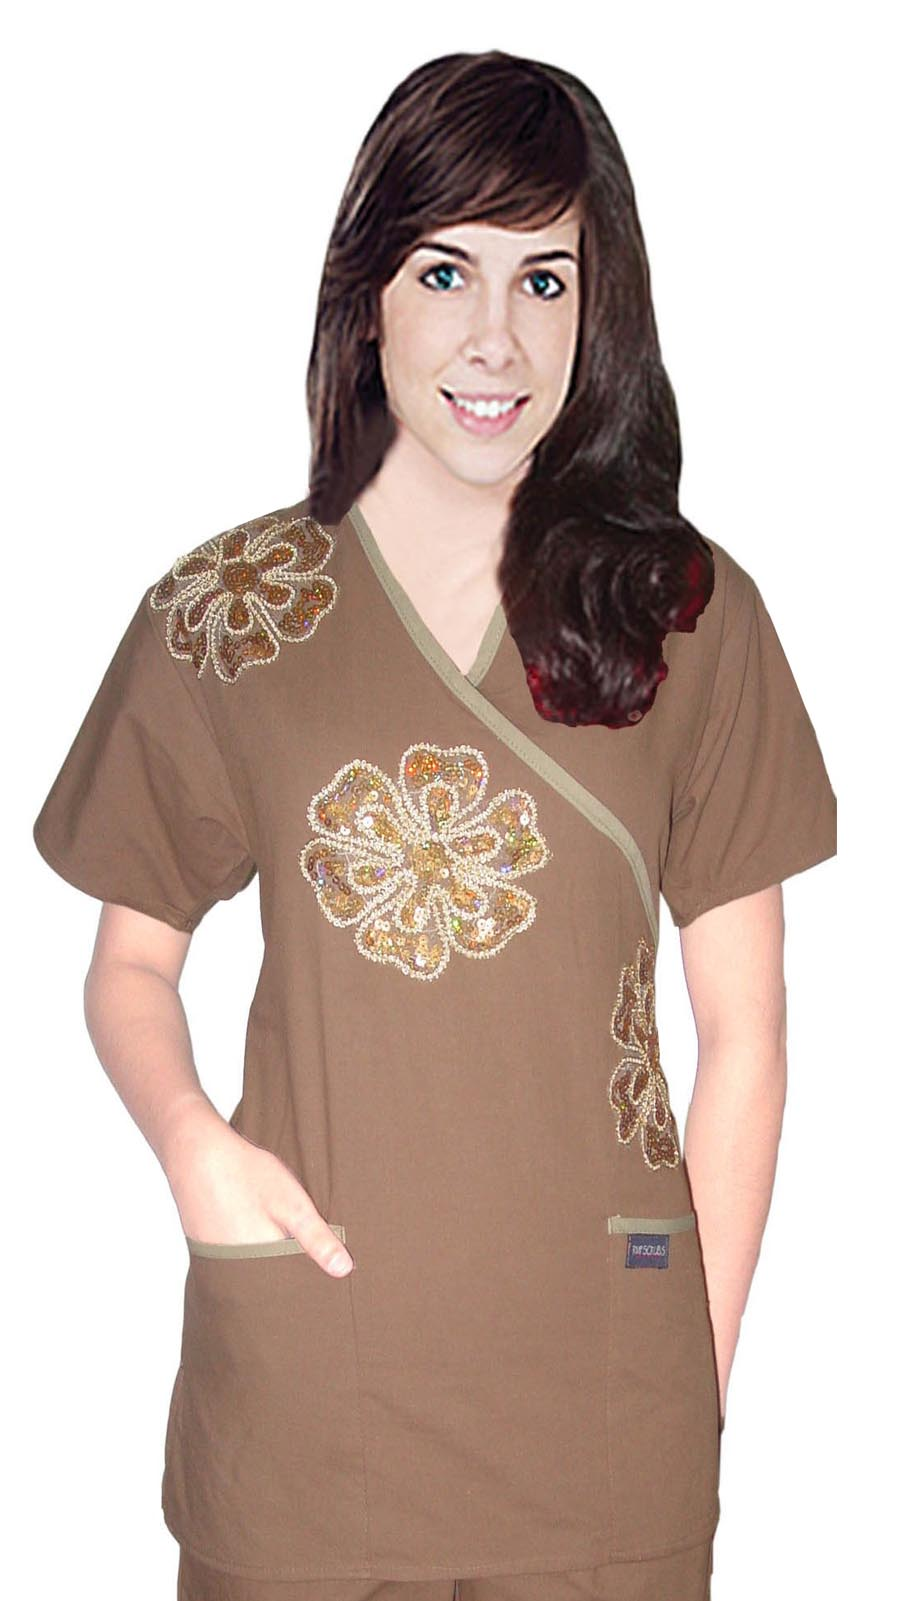 STYLISH TOP Big Golden Flower Crossover  Top